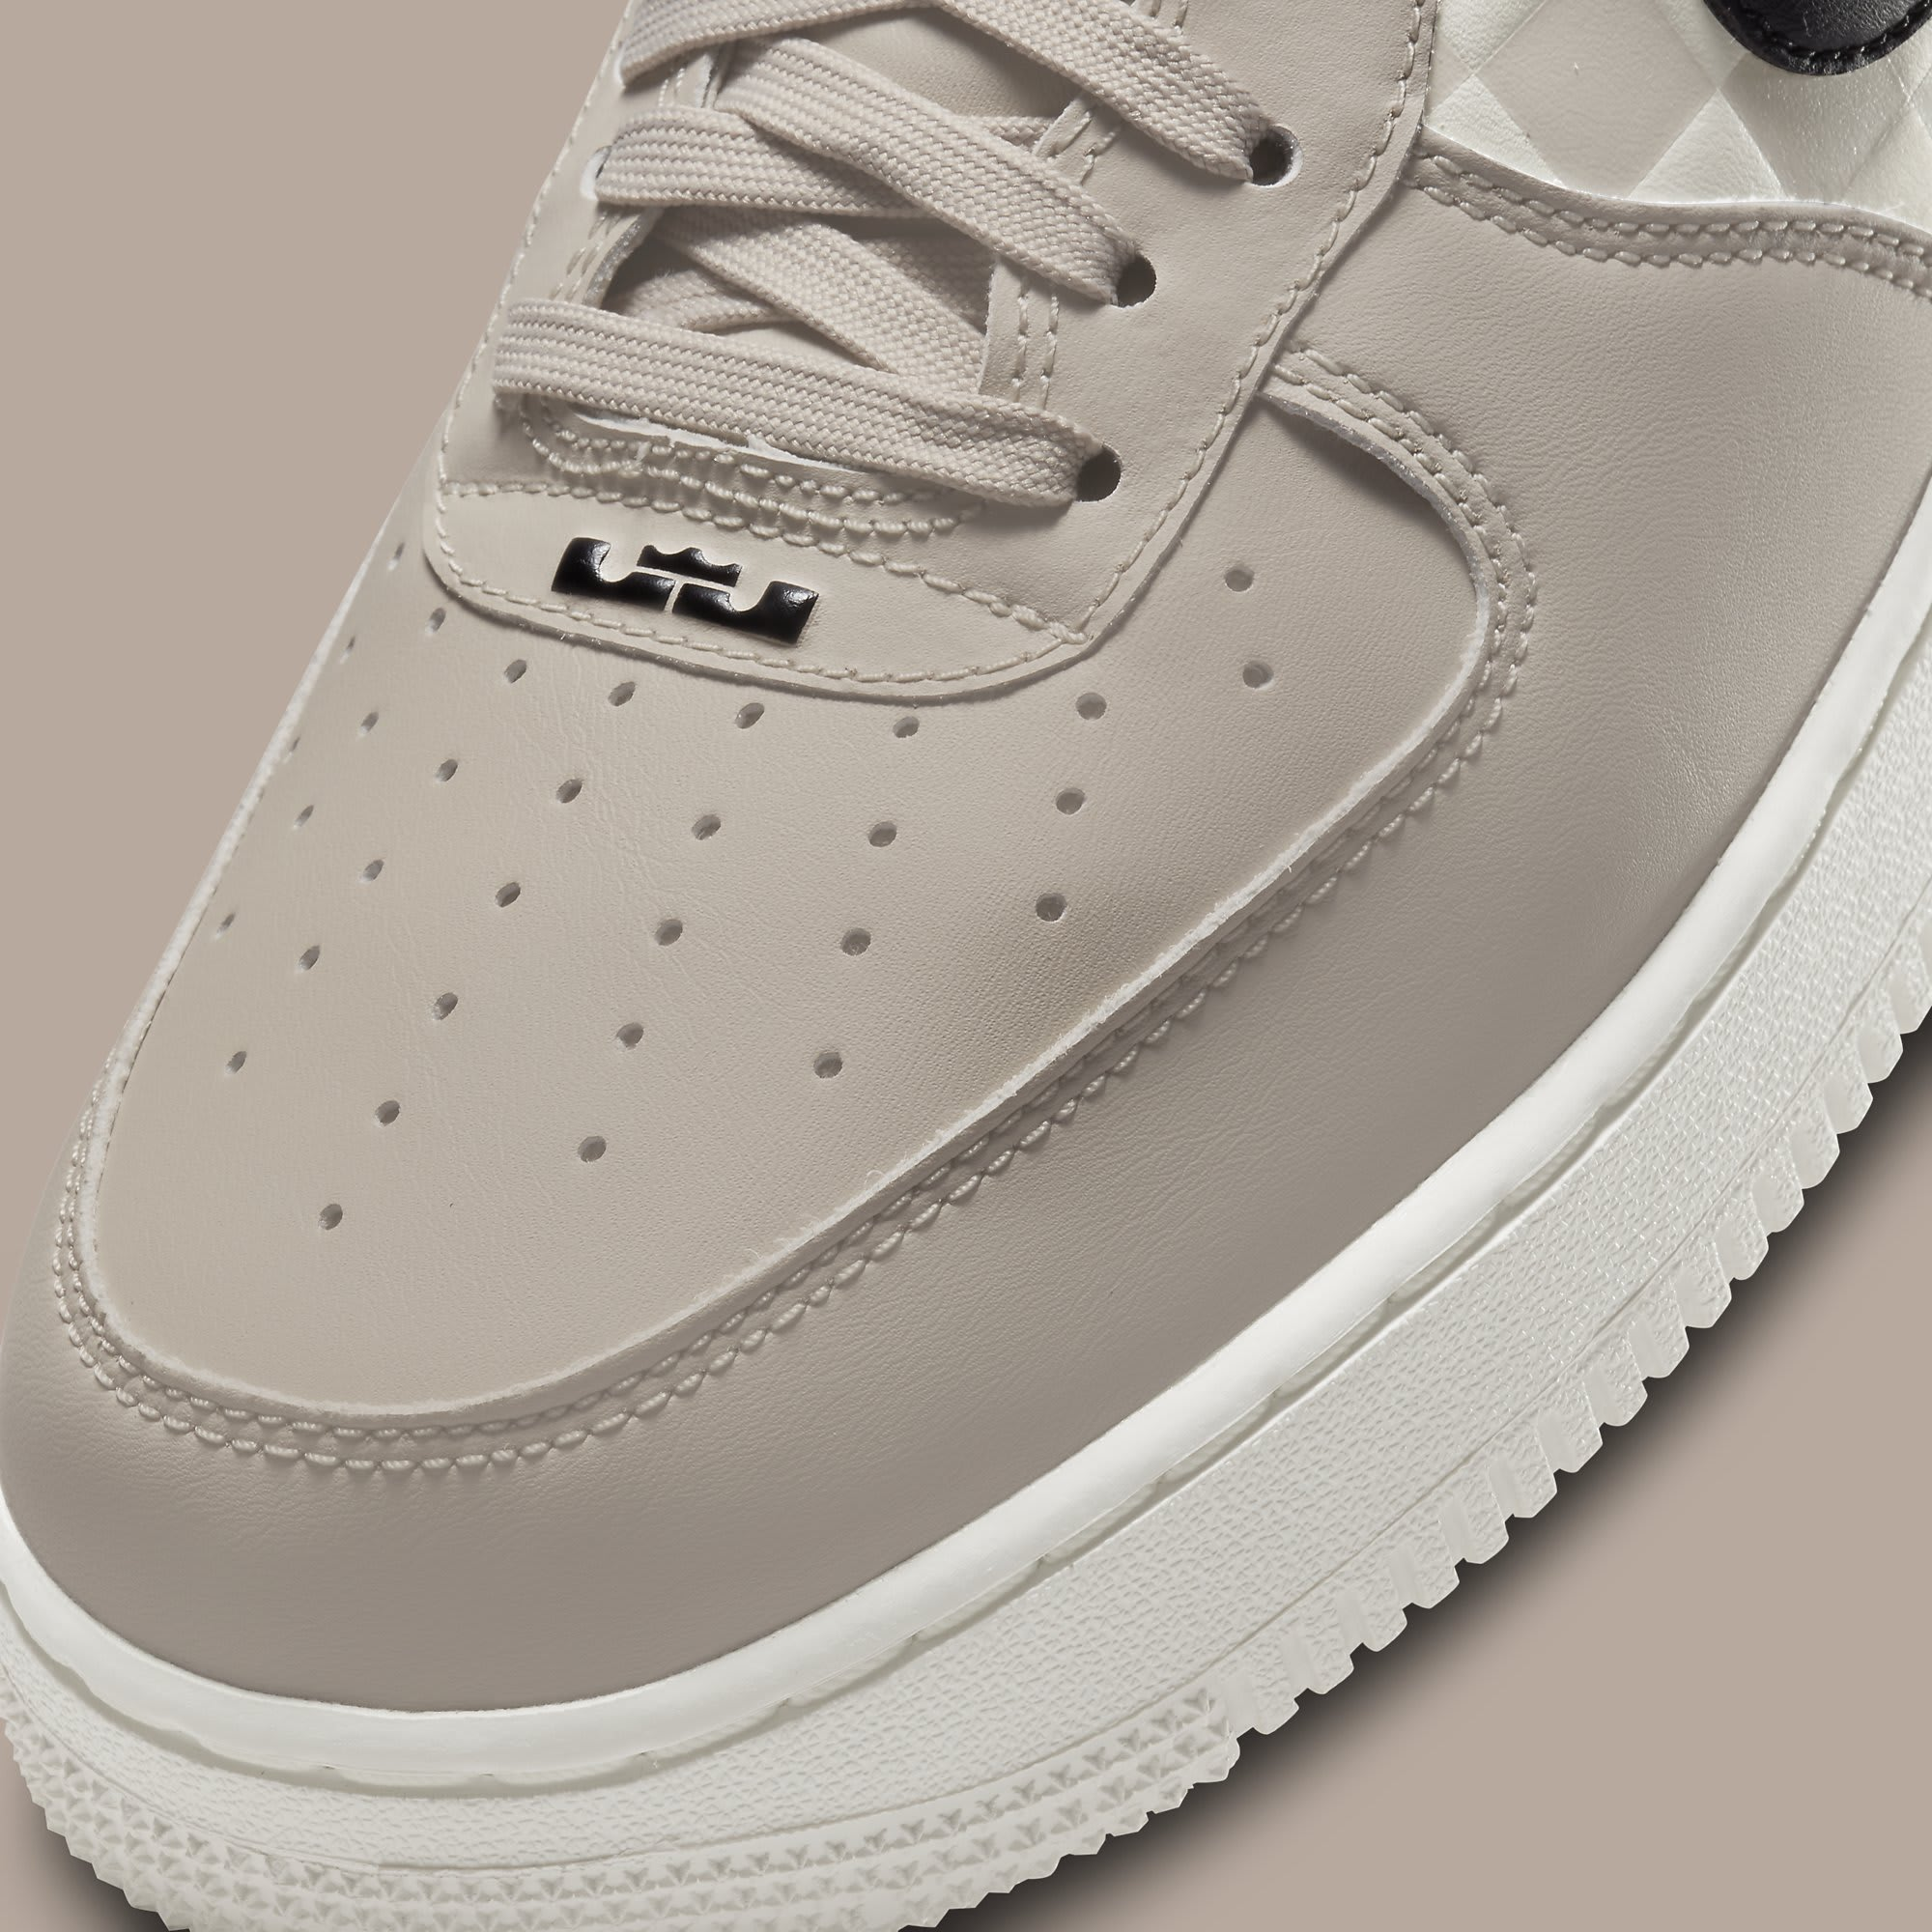 LeBron James x Nike Air Force 1 Low Strive for Greatness Release Date DC8877-200 Toe Detail